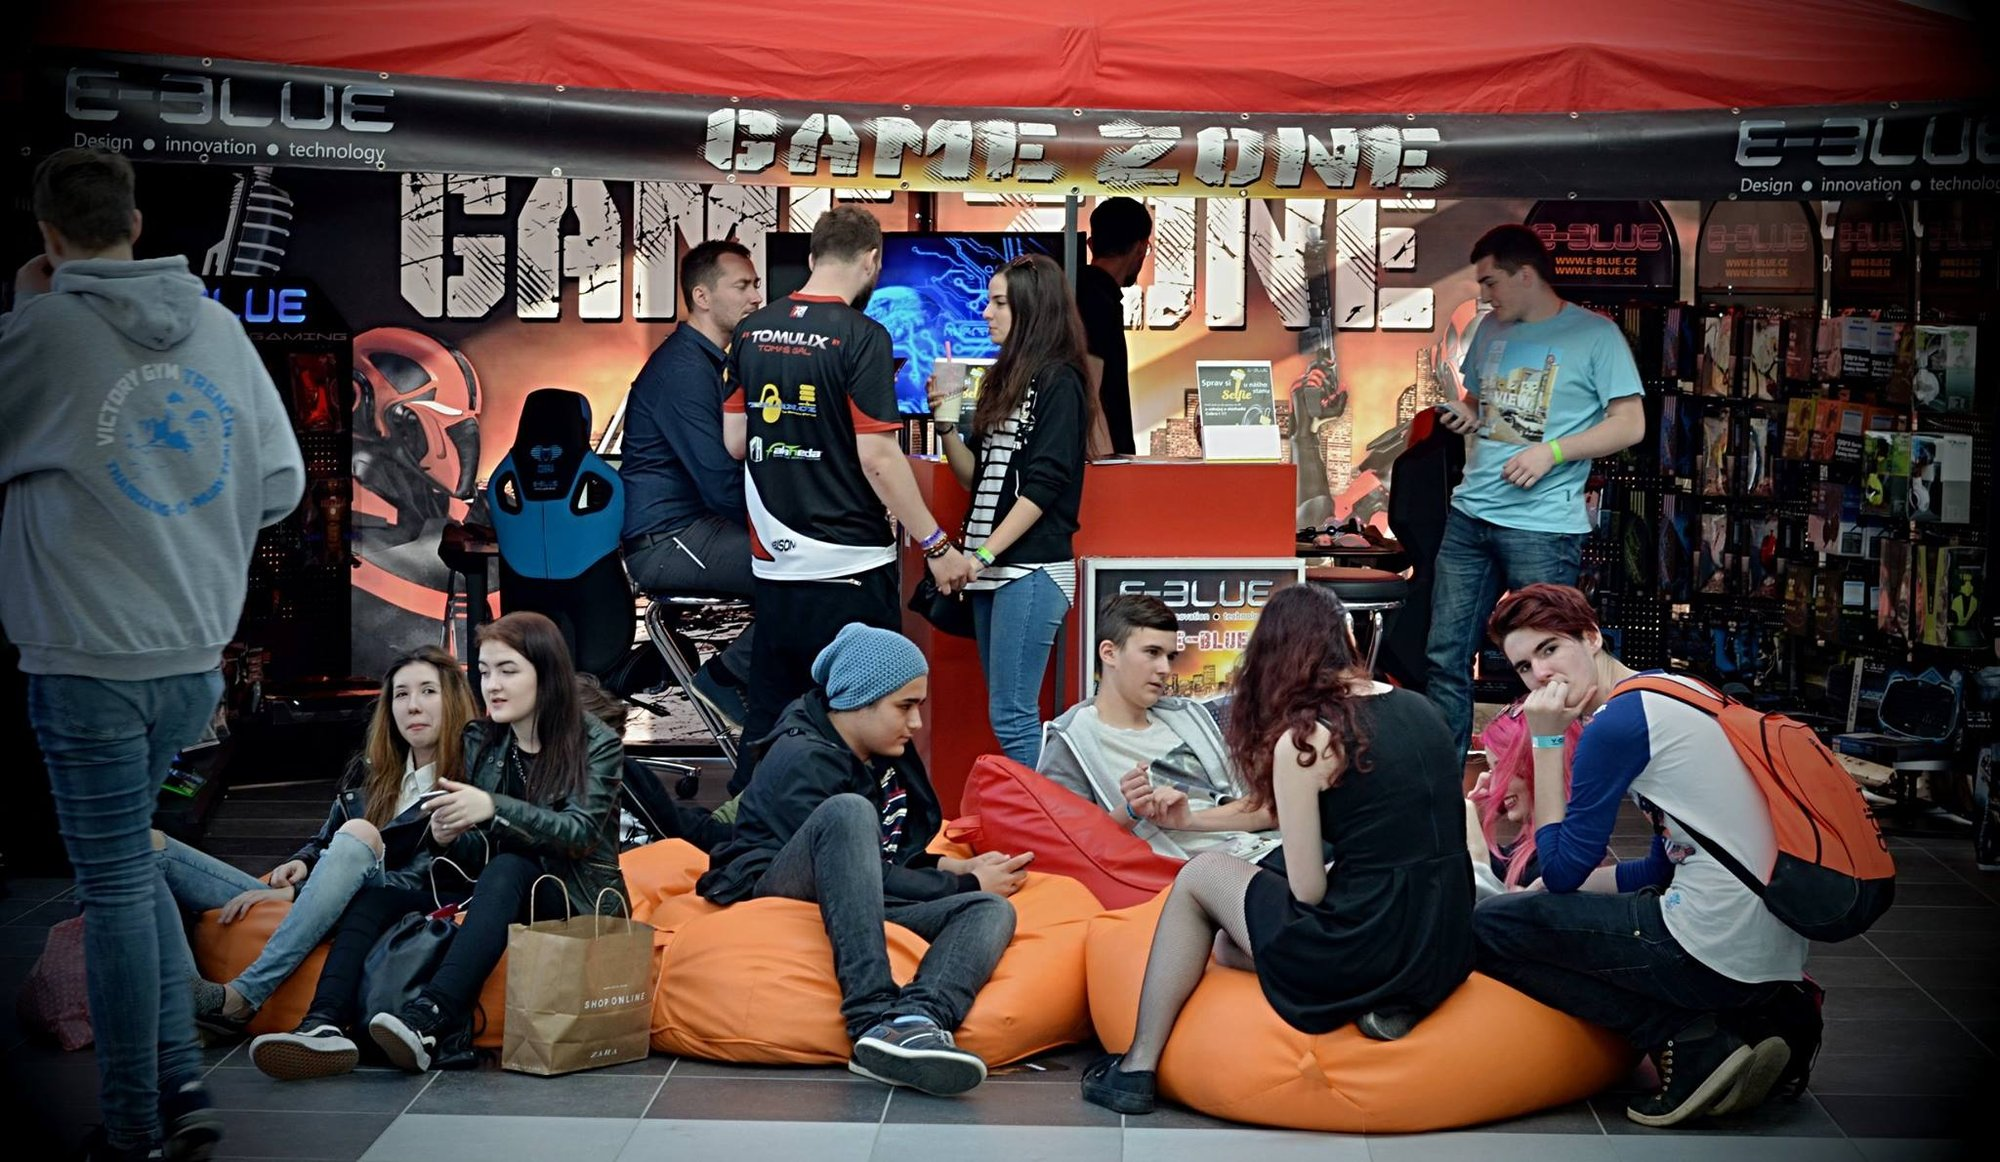 E-Blue Game Zone na Y-Games 2016